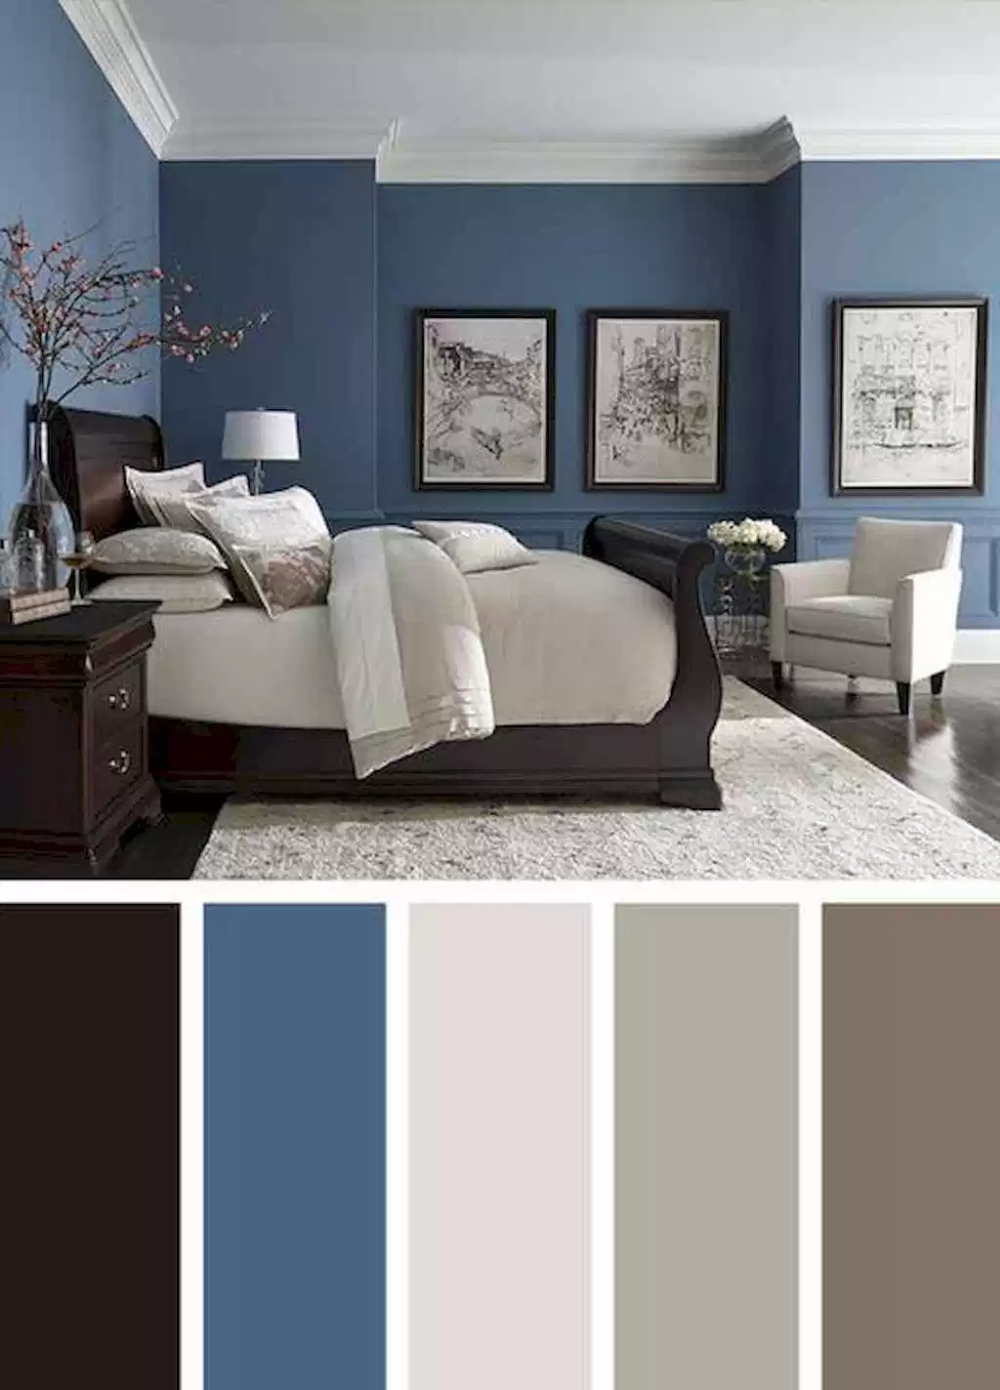 61 Simple Bedroom Decorating Ideas With Beautiful Color Browsyouroom Bedroom Color Schemes Best Bedroom Colors Bedroom Wall Colors